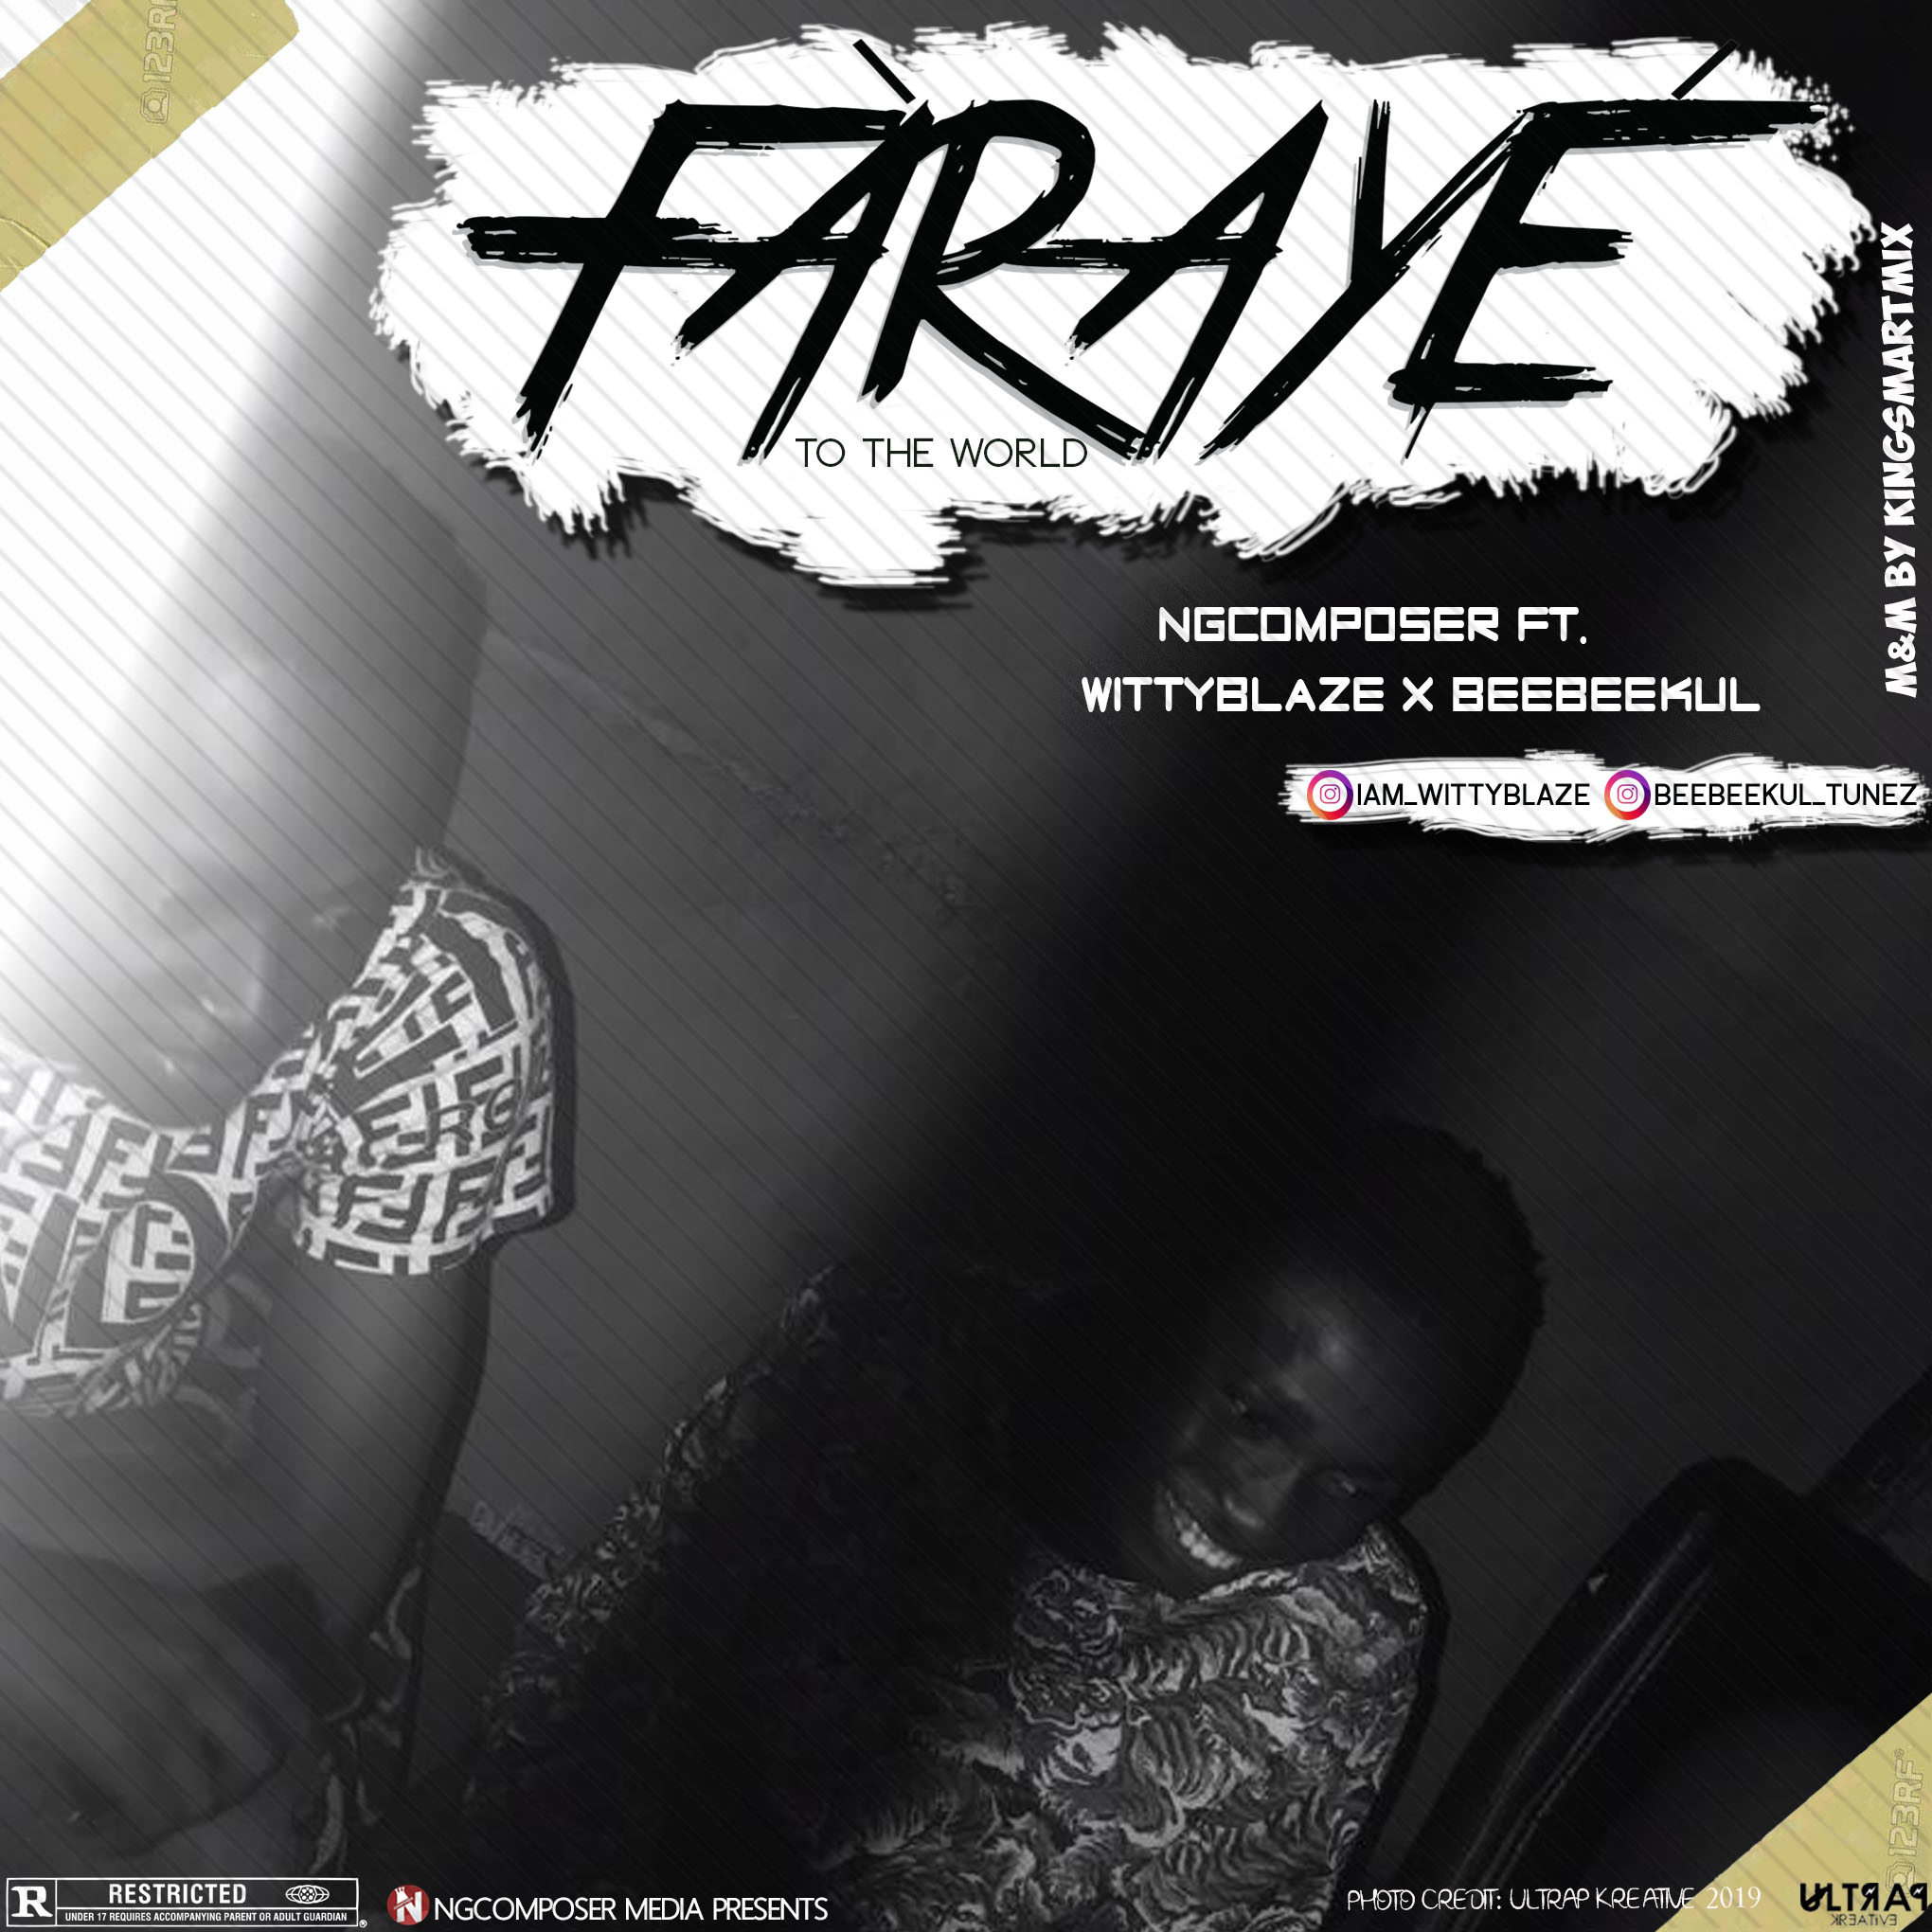 Ngcomposer Ft Witty Blaze x Beebeekul - Faraye